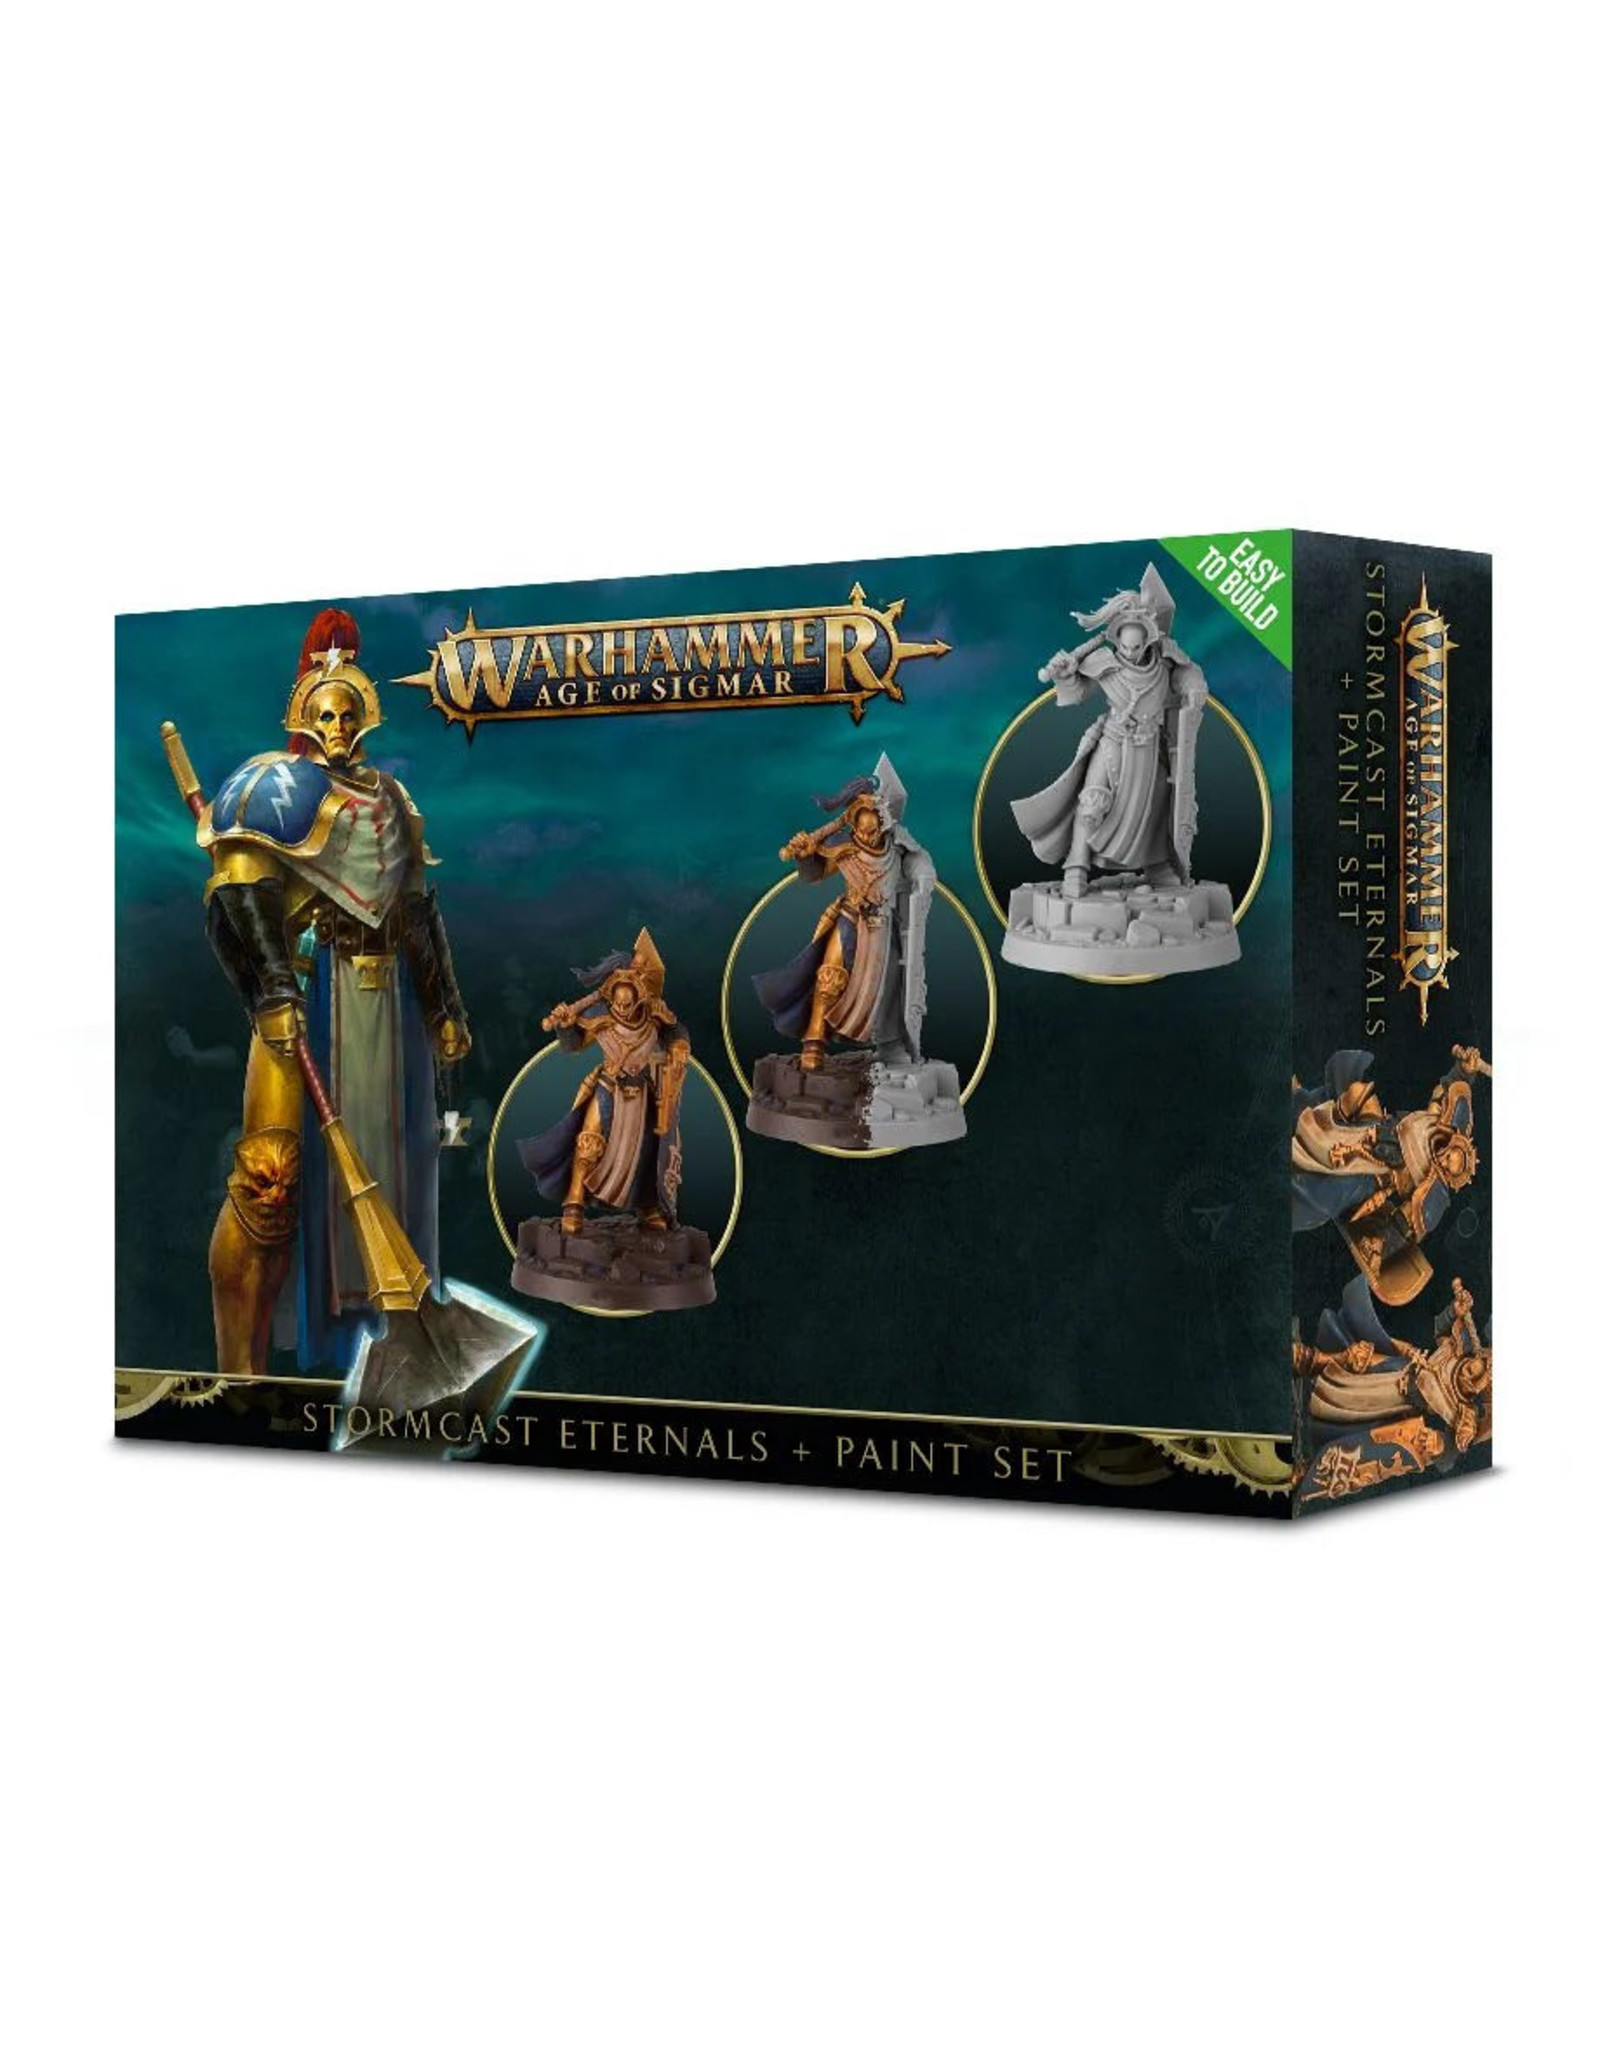 GAMES WORKSHOP WARHAMMER AGE OF SIGMAR - STORMCAST ETERNALS + PAINT SET